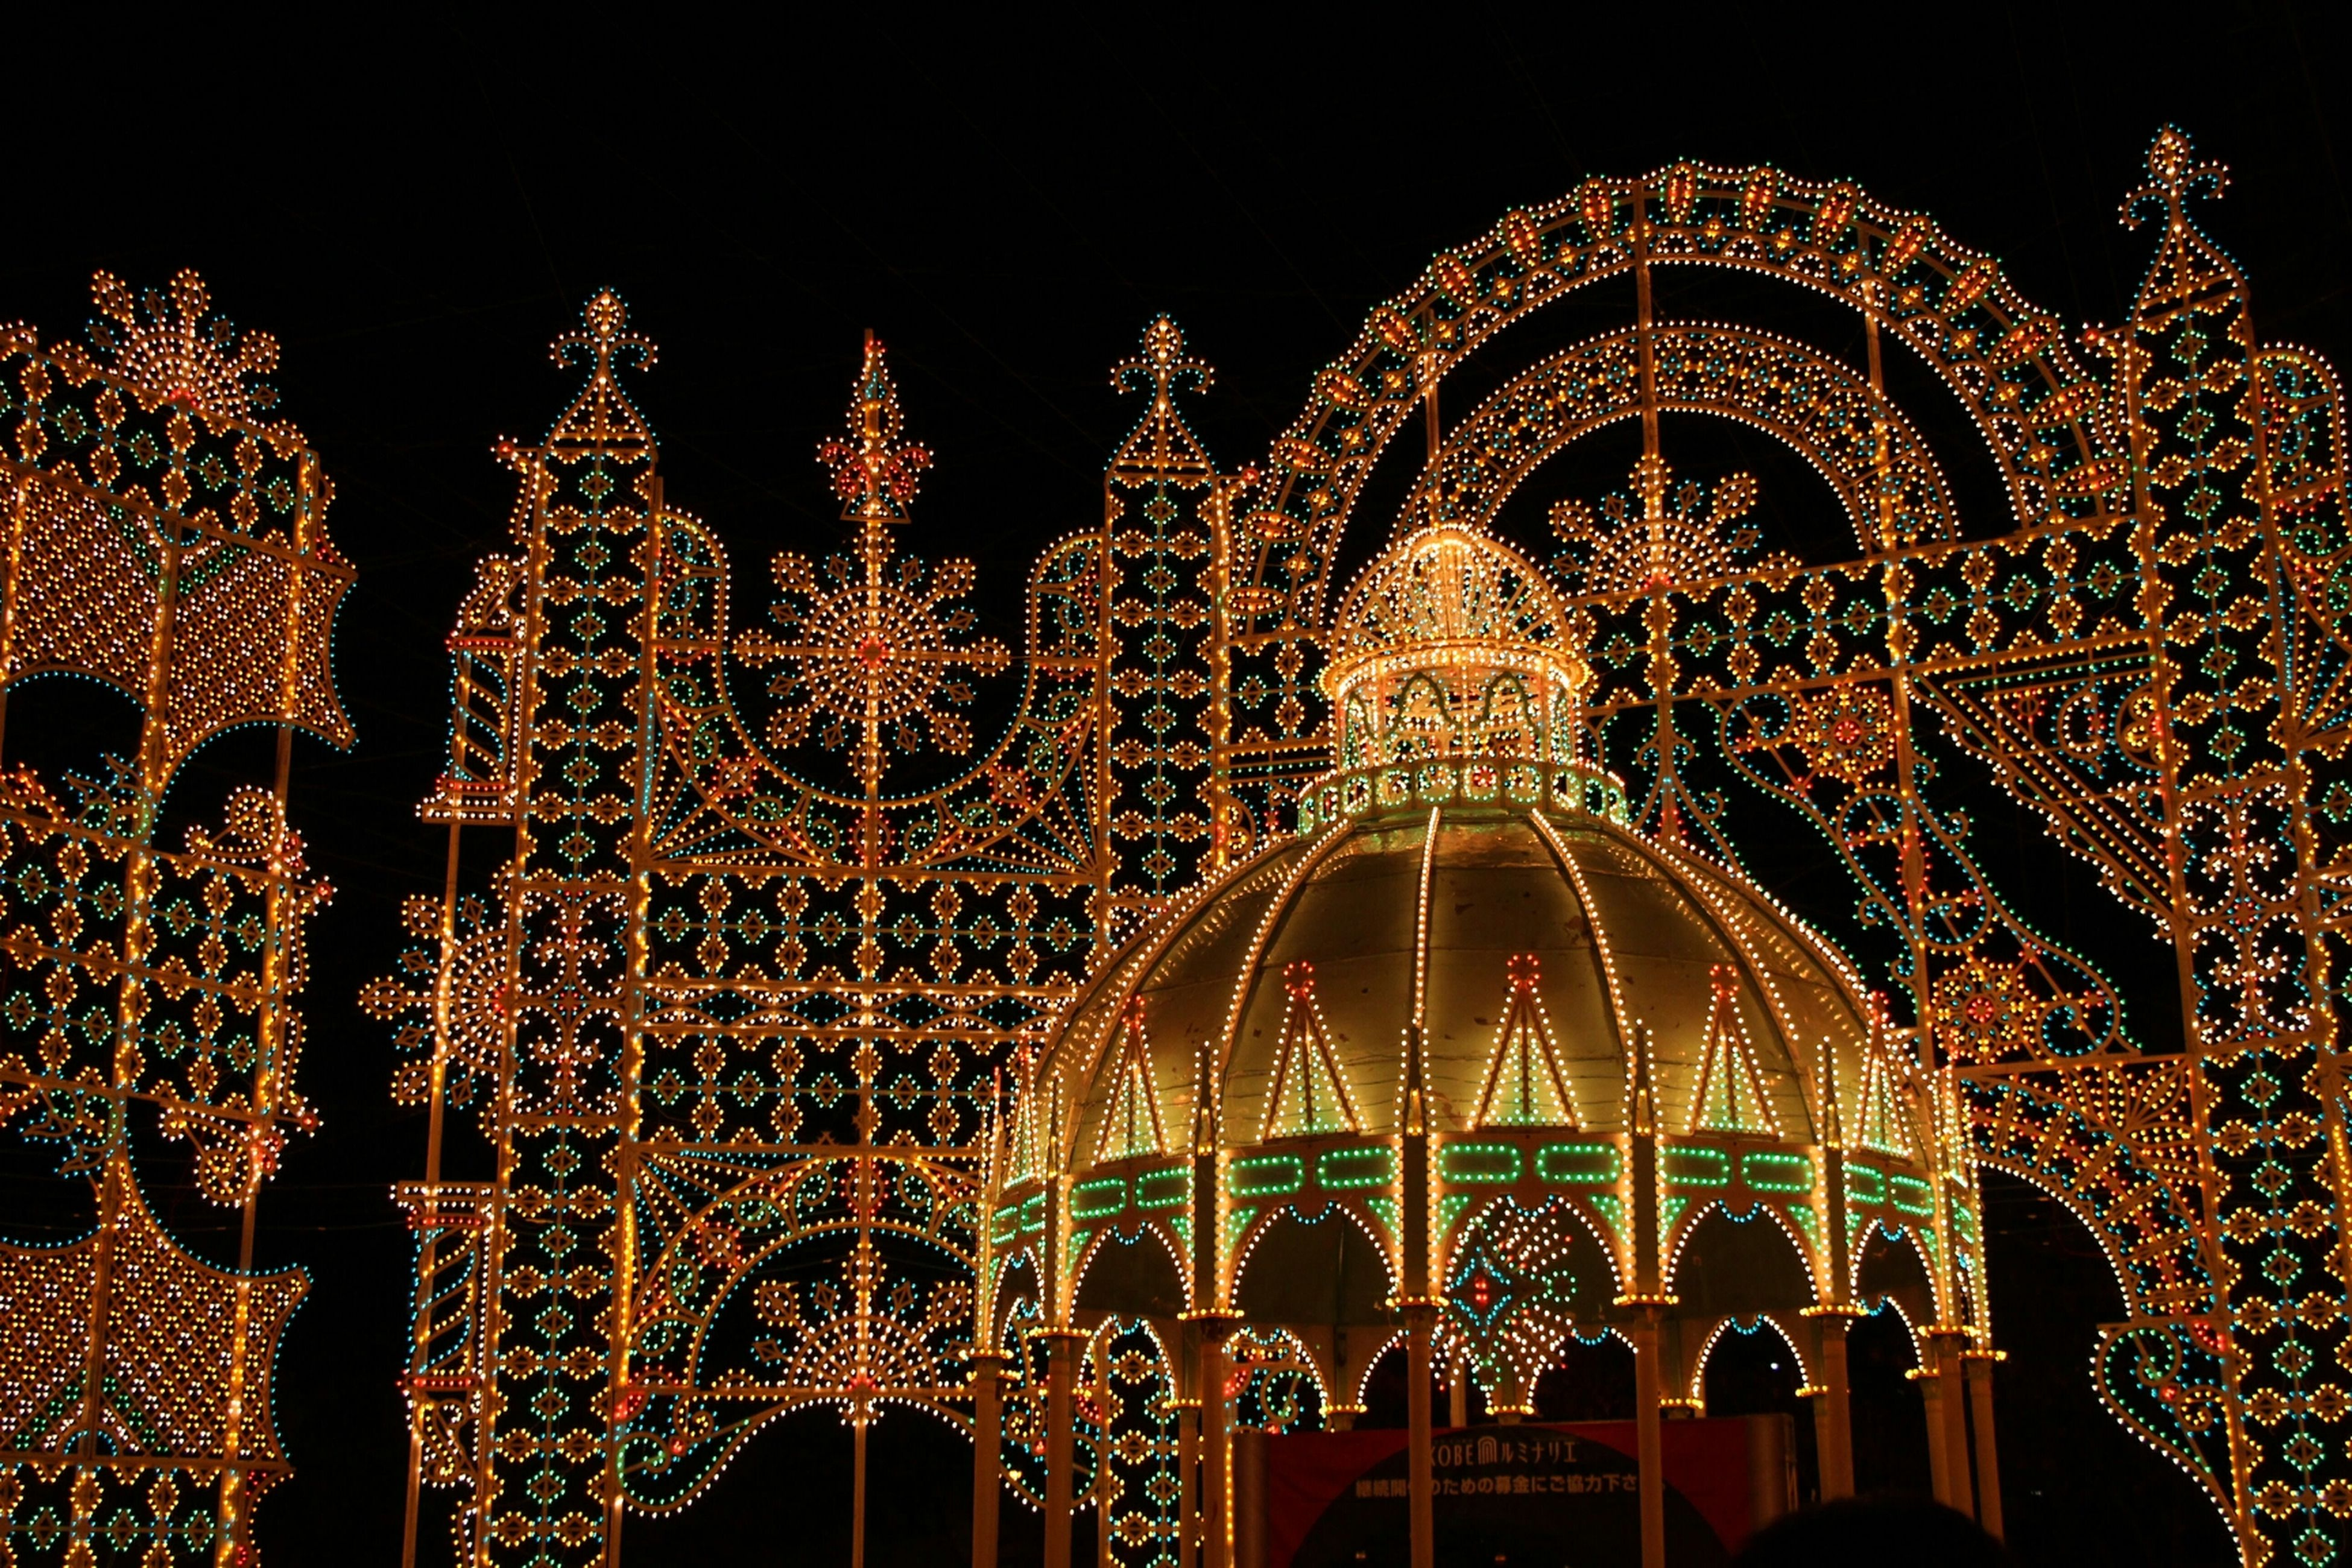 illuminated, night, religion, decoration, place of worship, spirituality, celebration, tradition, lighting equipment, low angle view, indoors, cultures, hanging, ornate, christmas lights, arts culture and entertainment, temple - building, christmas decoration, dark